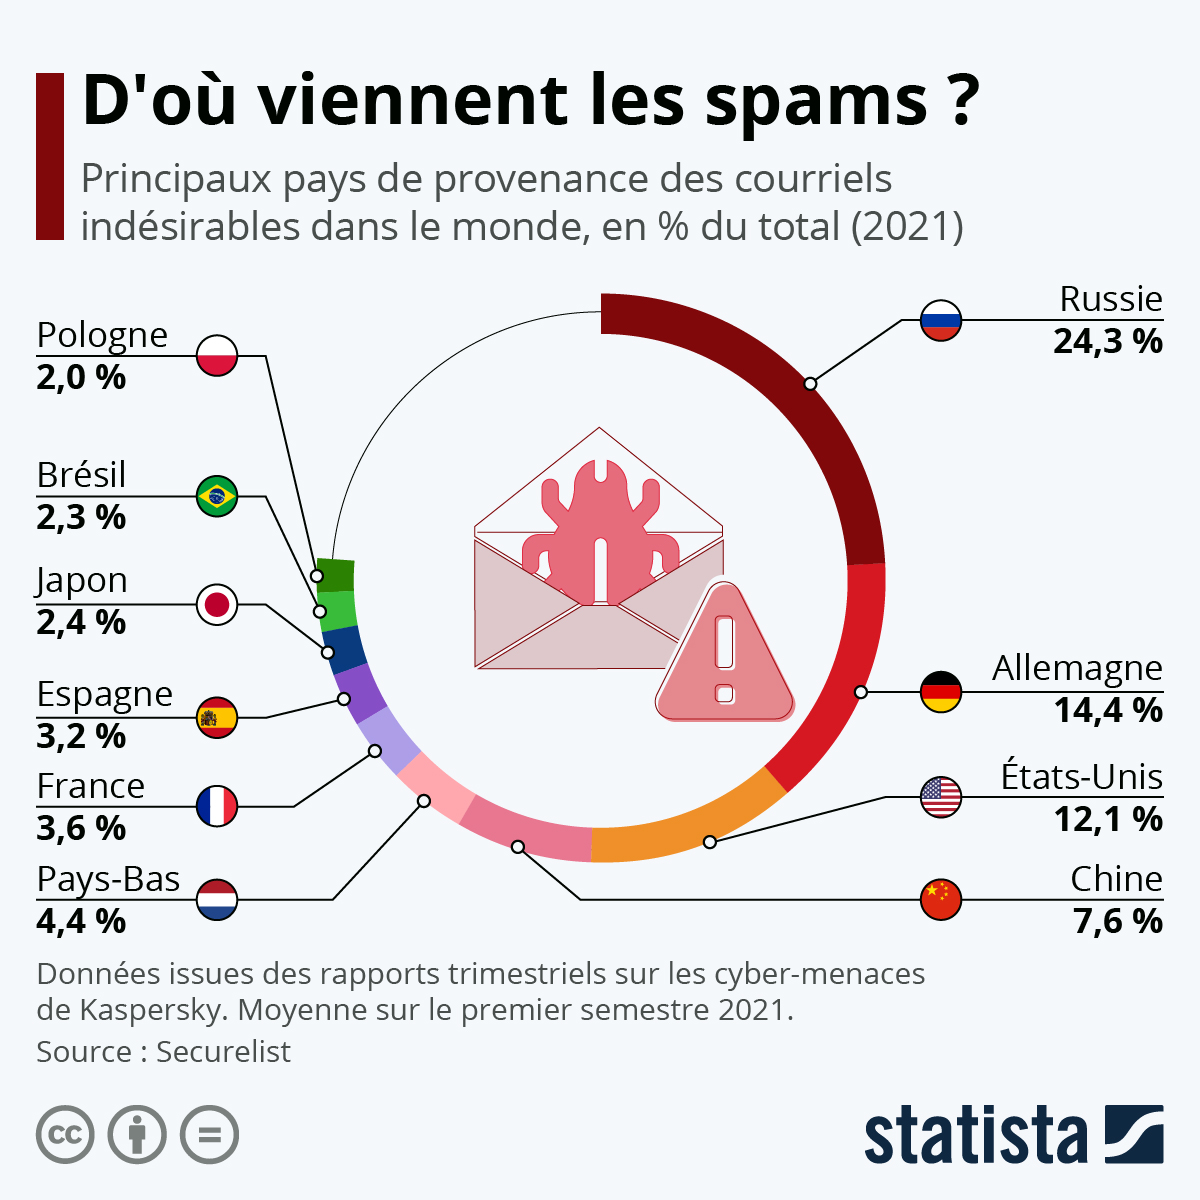 Infographie: D'où viennent les spams ? | Statista